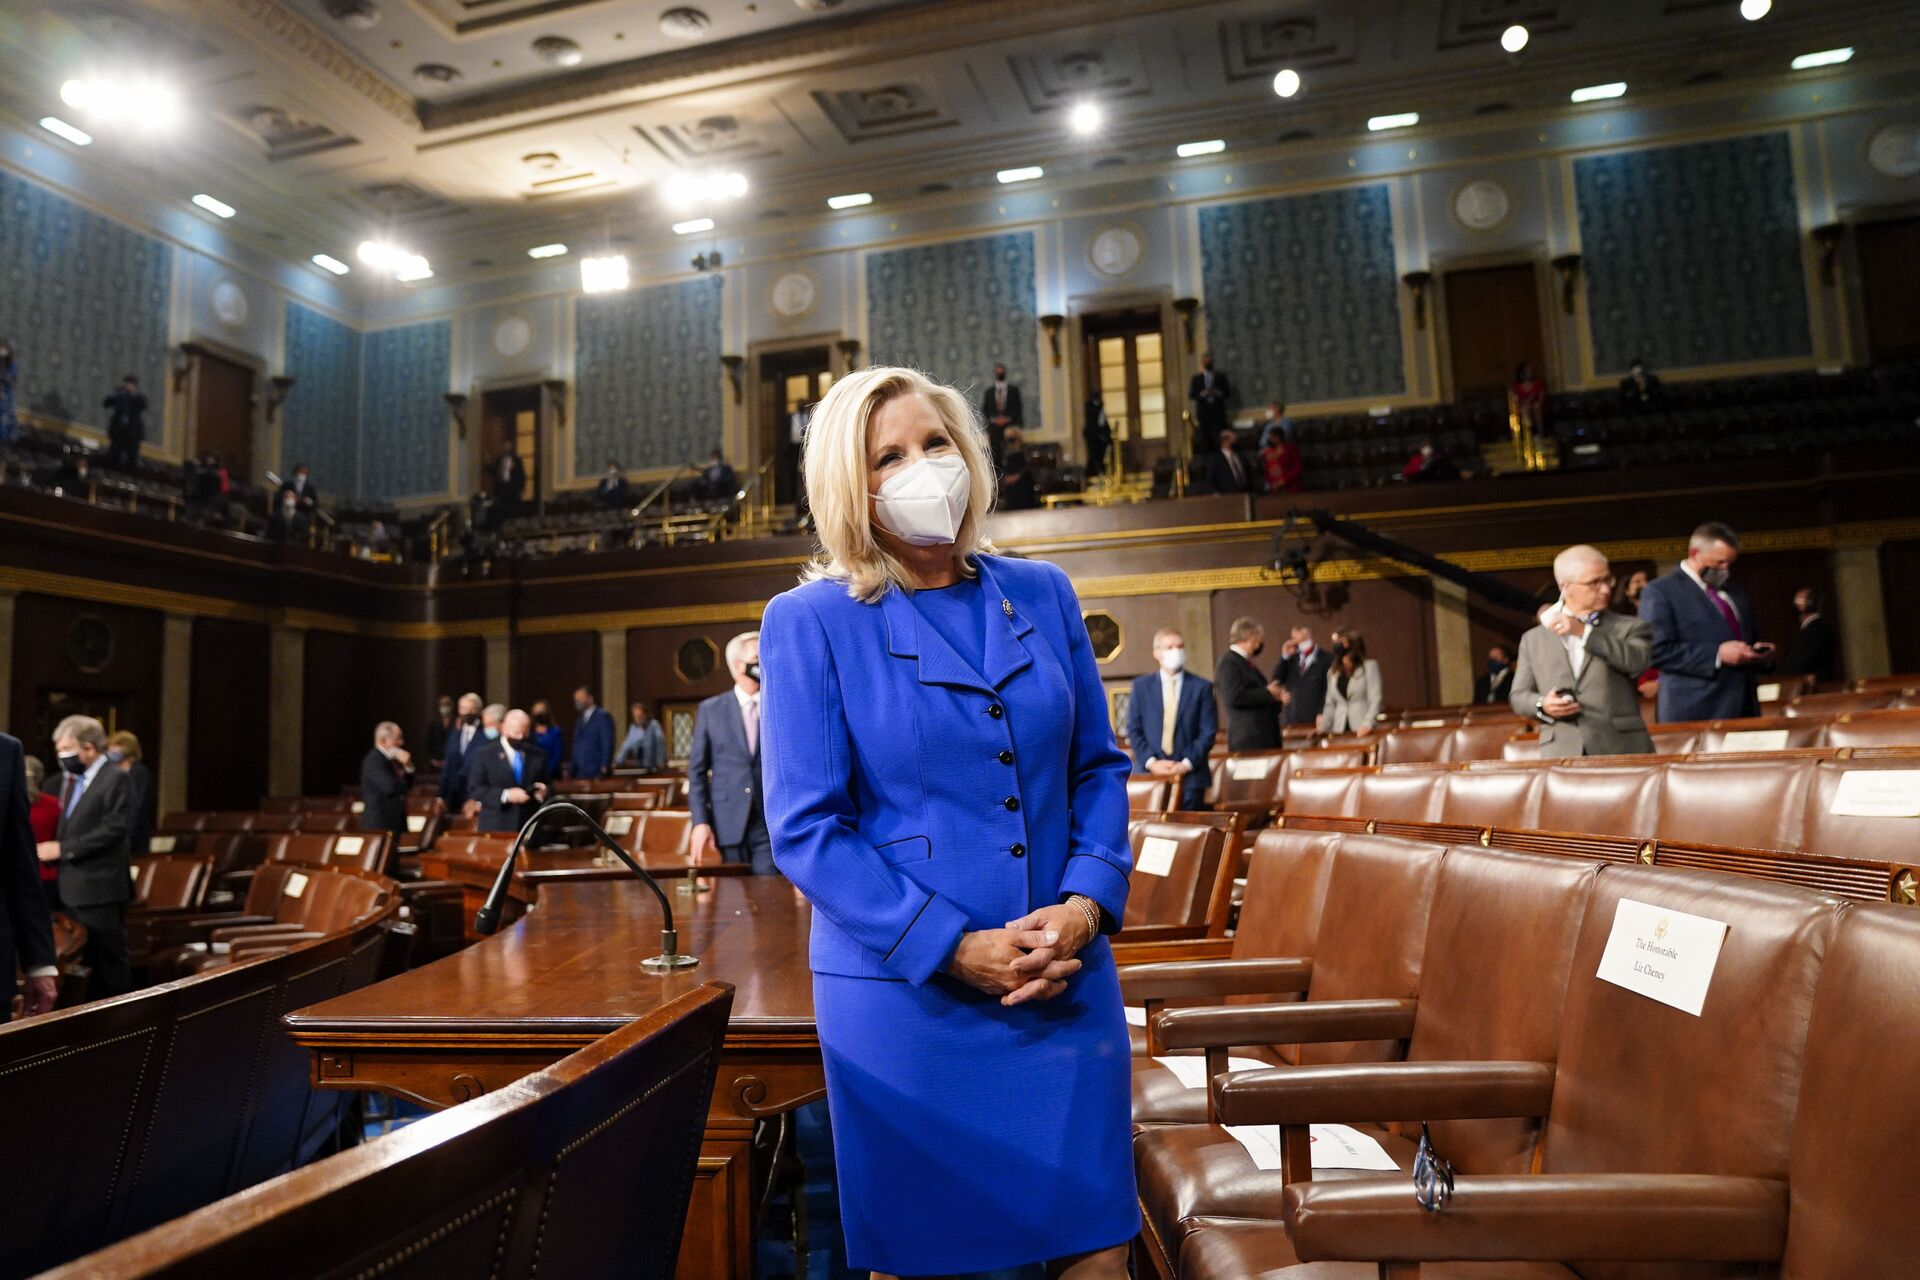 Rep. Liz Cheney, R-Wyo., arrives to the chamber ahead of President Joe Biden speaking to a joint session of Congress, Wednesday, April 28, 2021, in the House Chamber at the U.S. Capitol in Washington. - Sputnik International, 1920, 07.09.2021